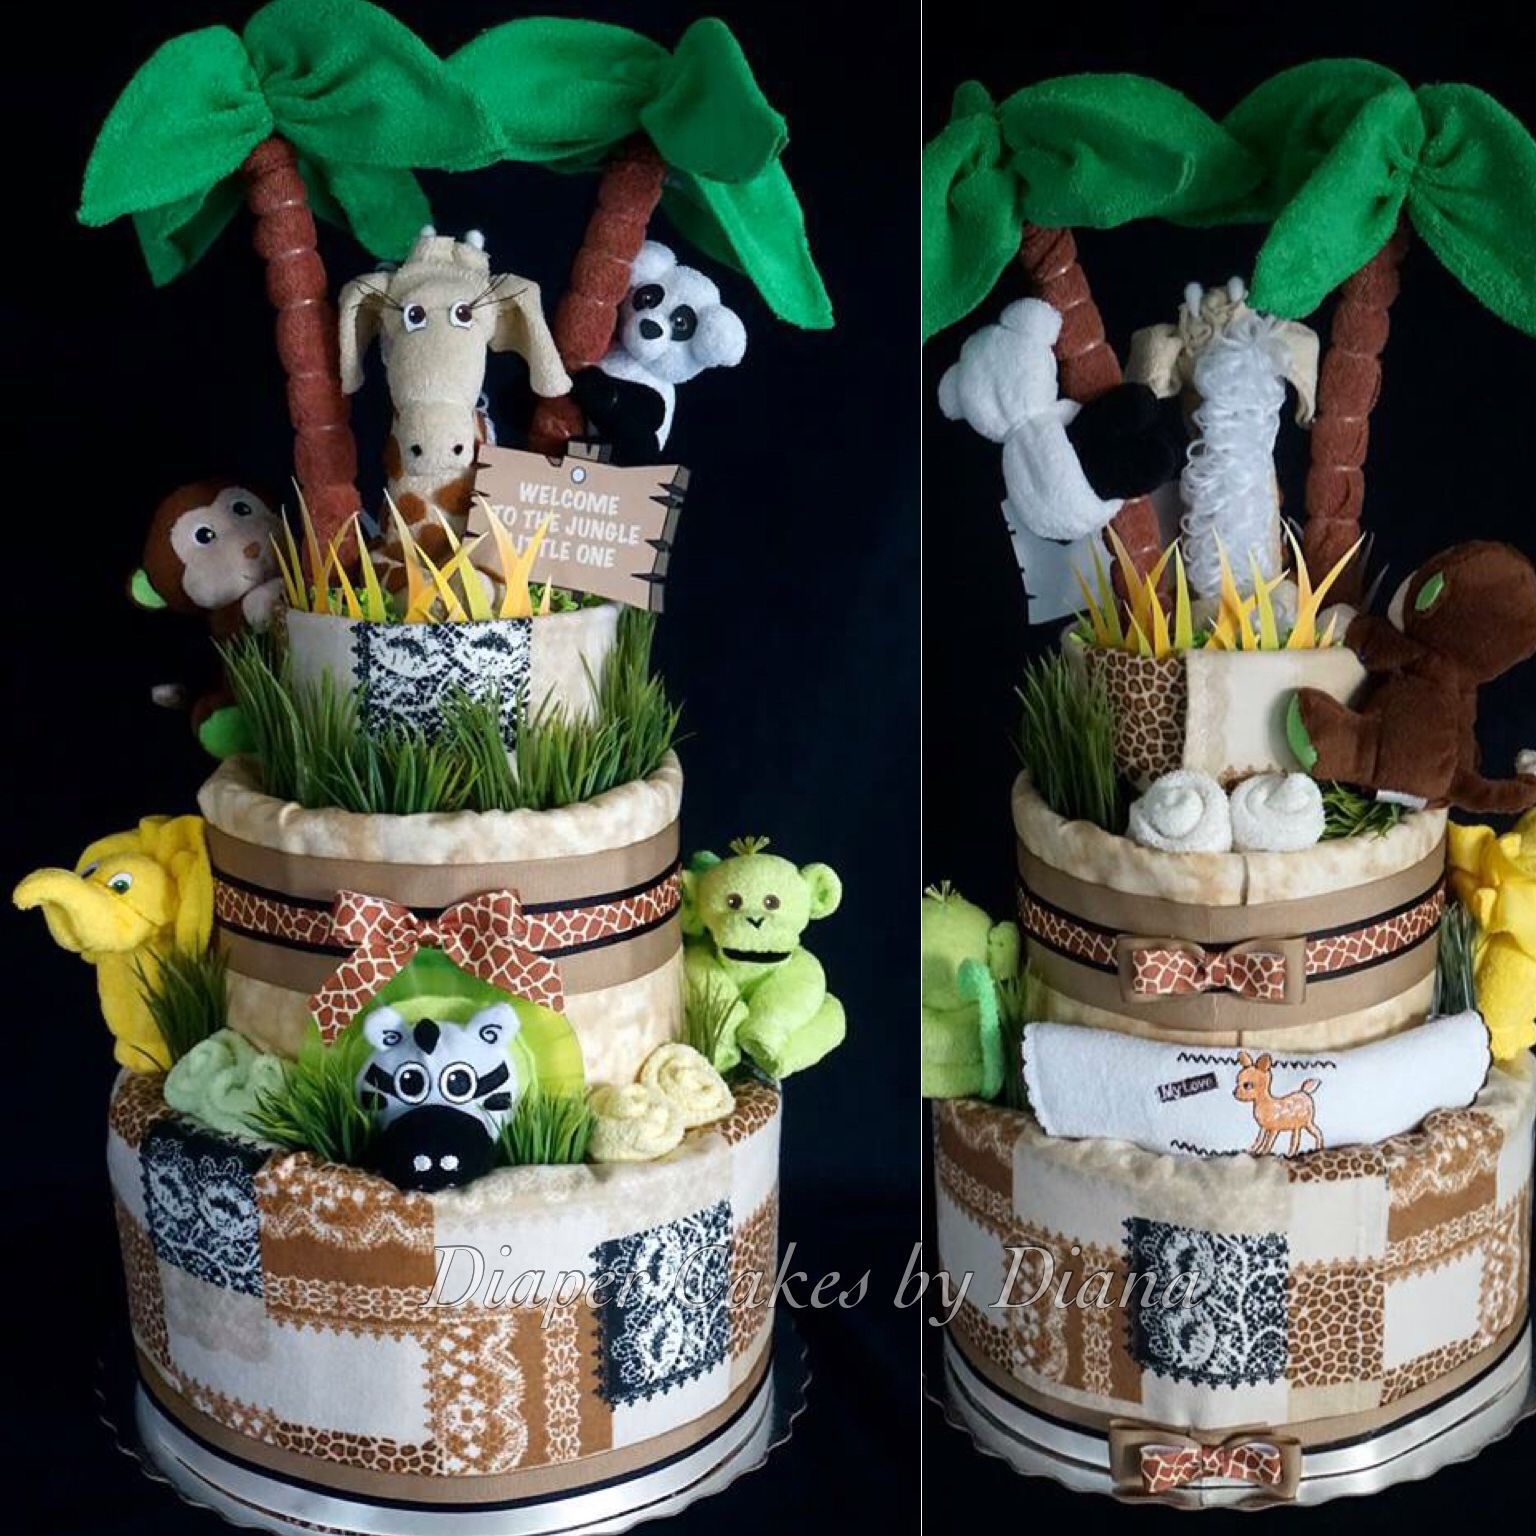 Jungle Themed Diaper Cake Www Facebook Com Diapercakesbydiana